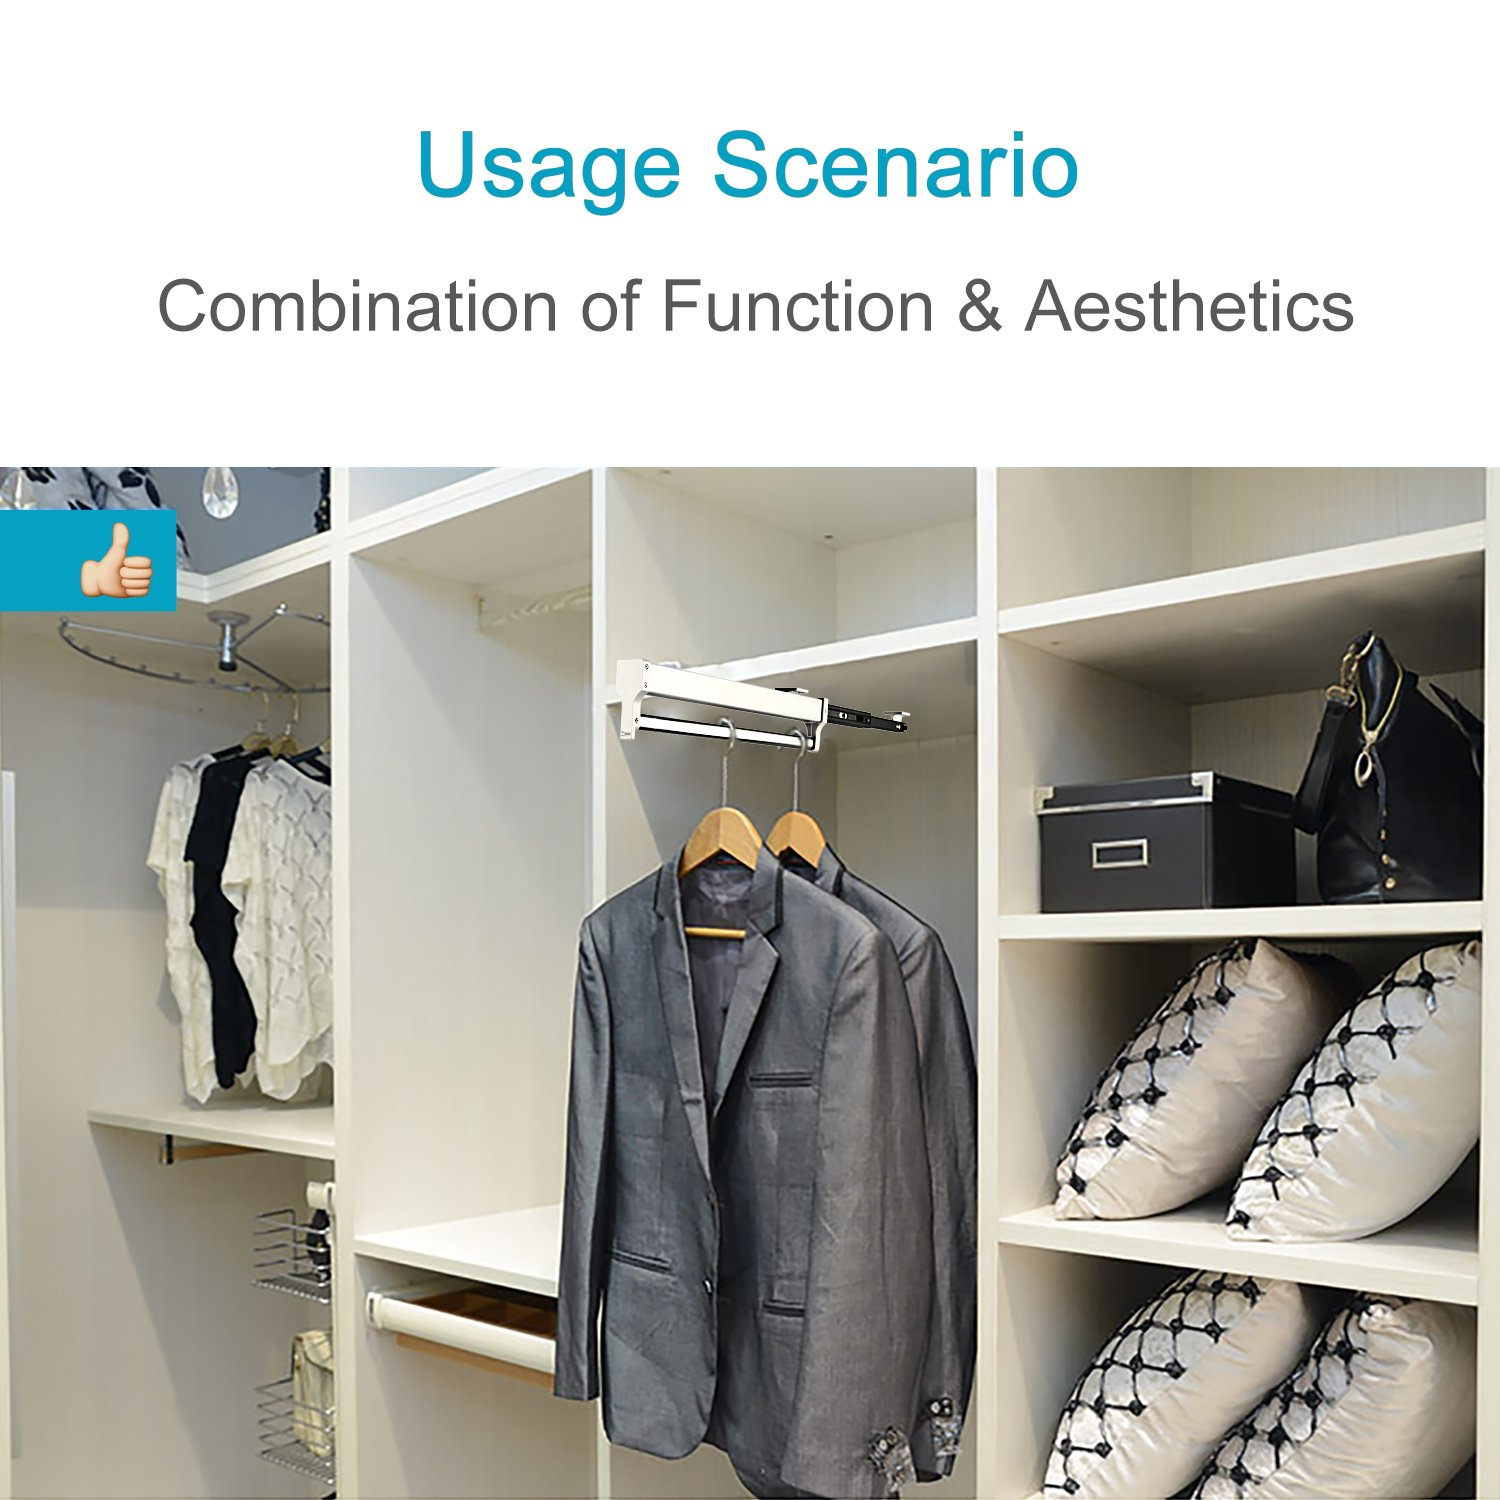 to by corner reach one closets is very can pants mean tidy two my shelves have category so addition well long closet i the also in rack racks of level everything accessible